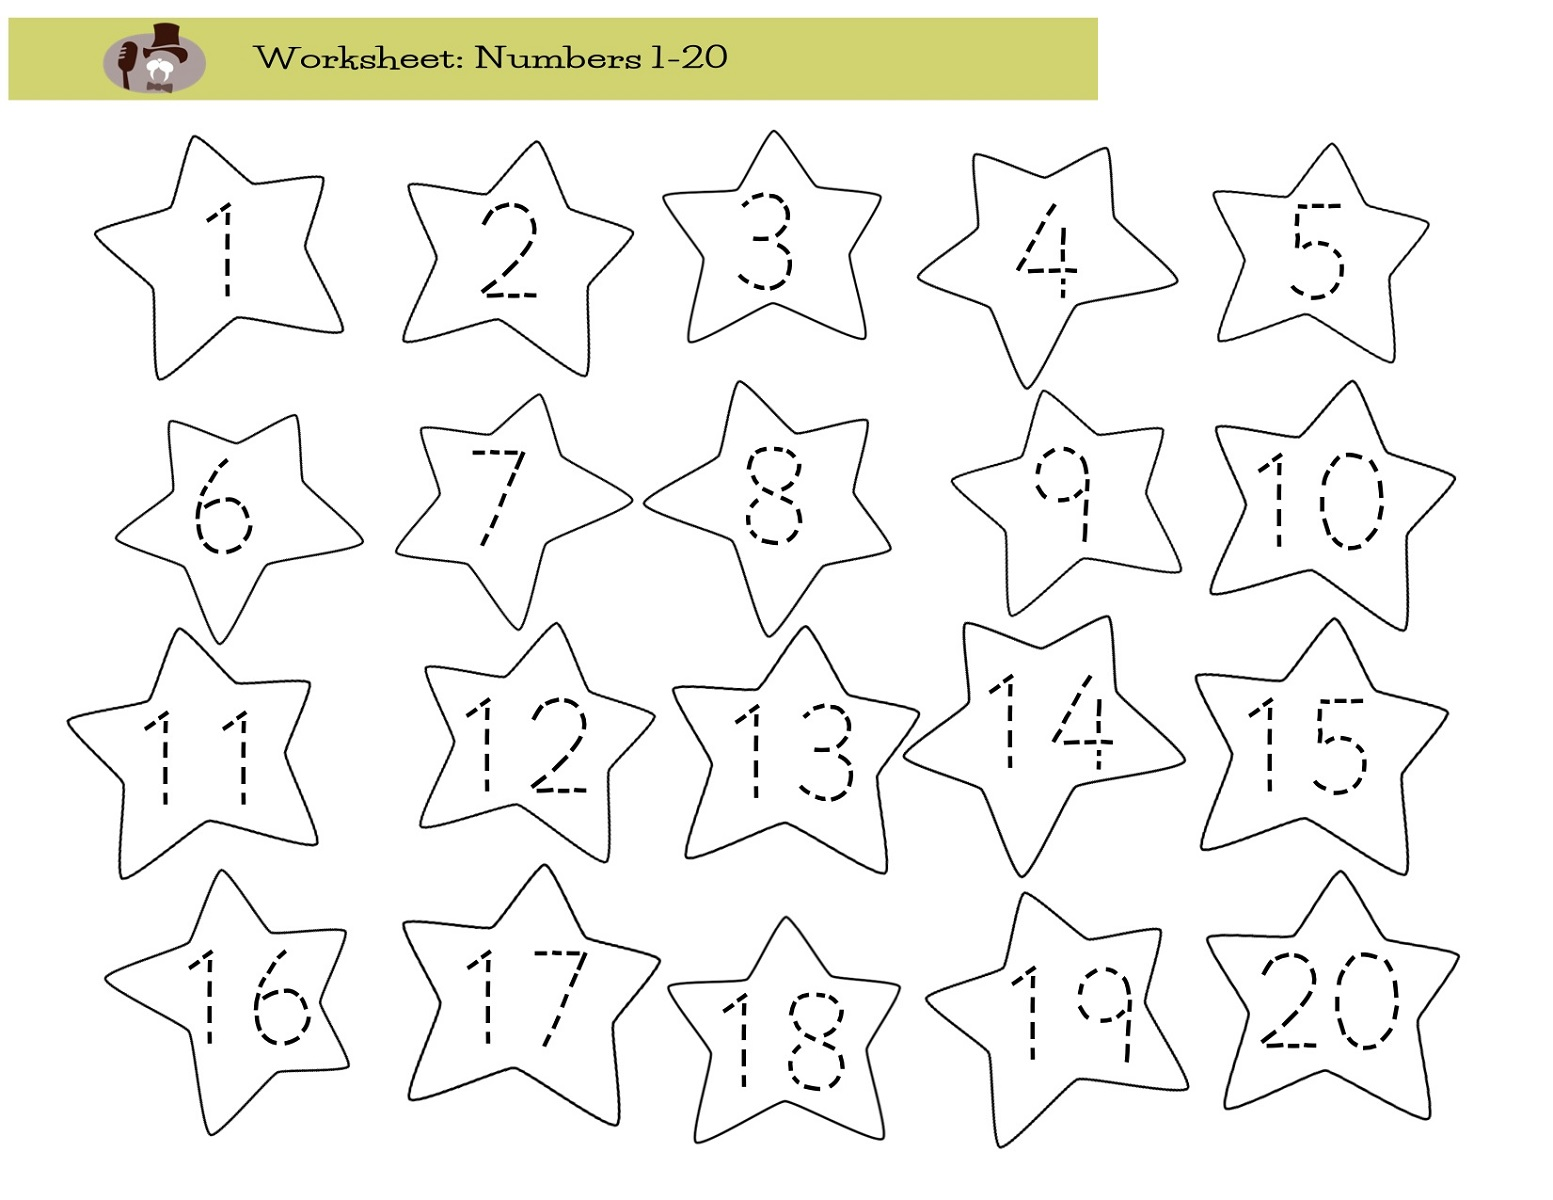 Number 20 Worksheets Worksheets For All